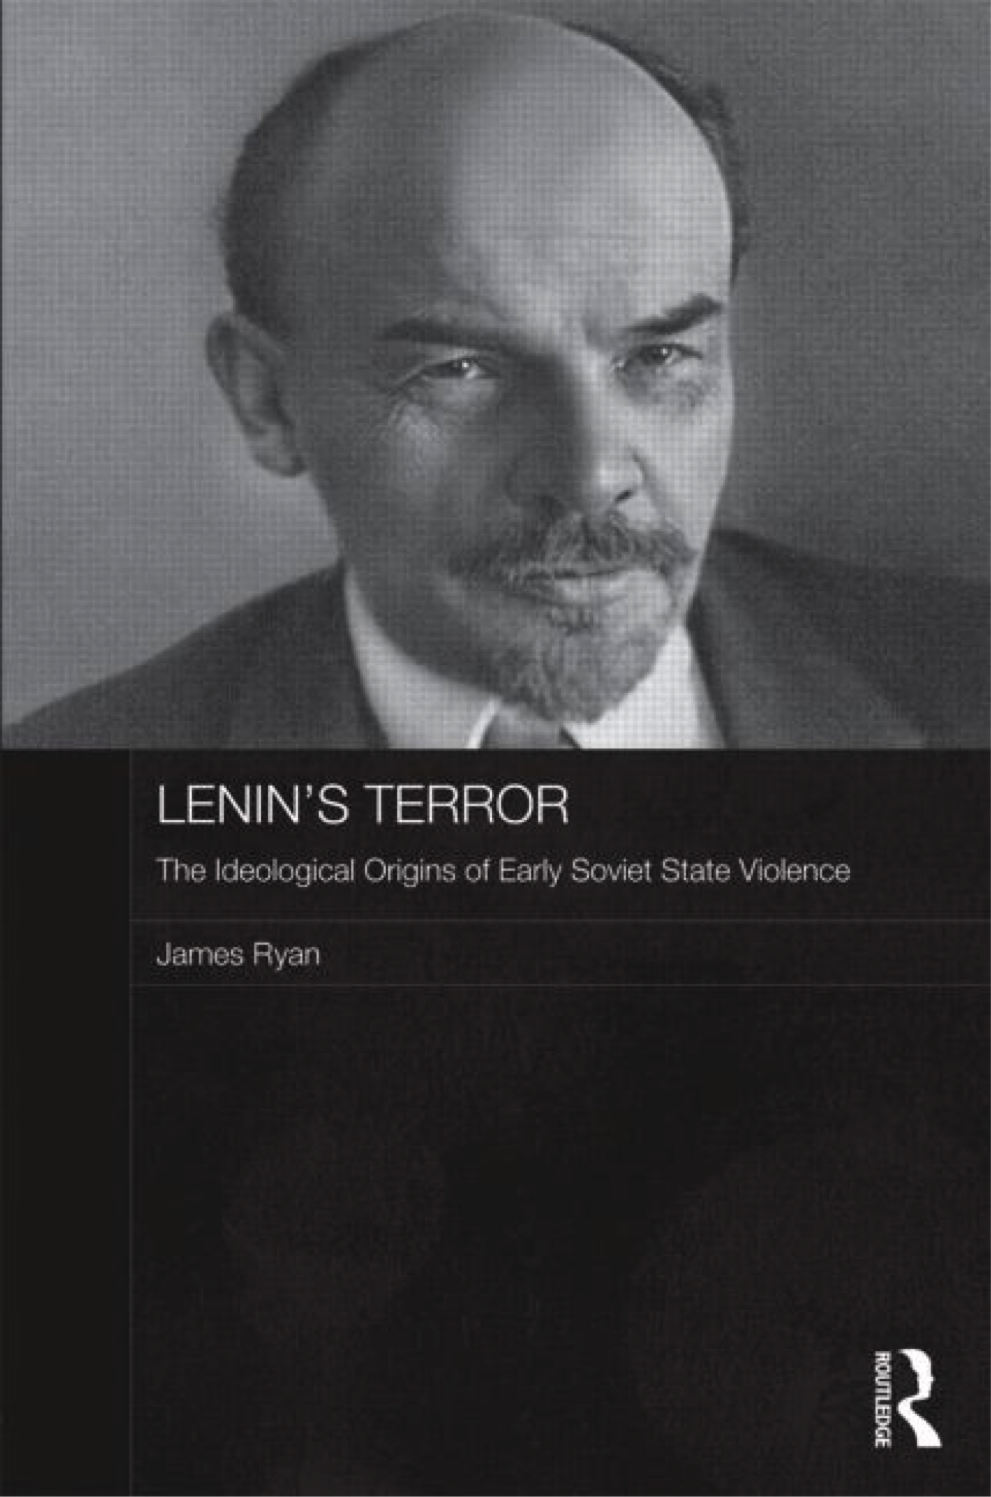 Lenin's Terror by James Ryan